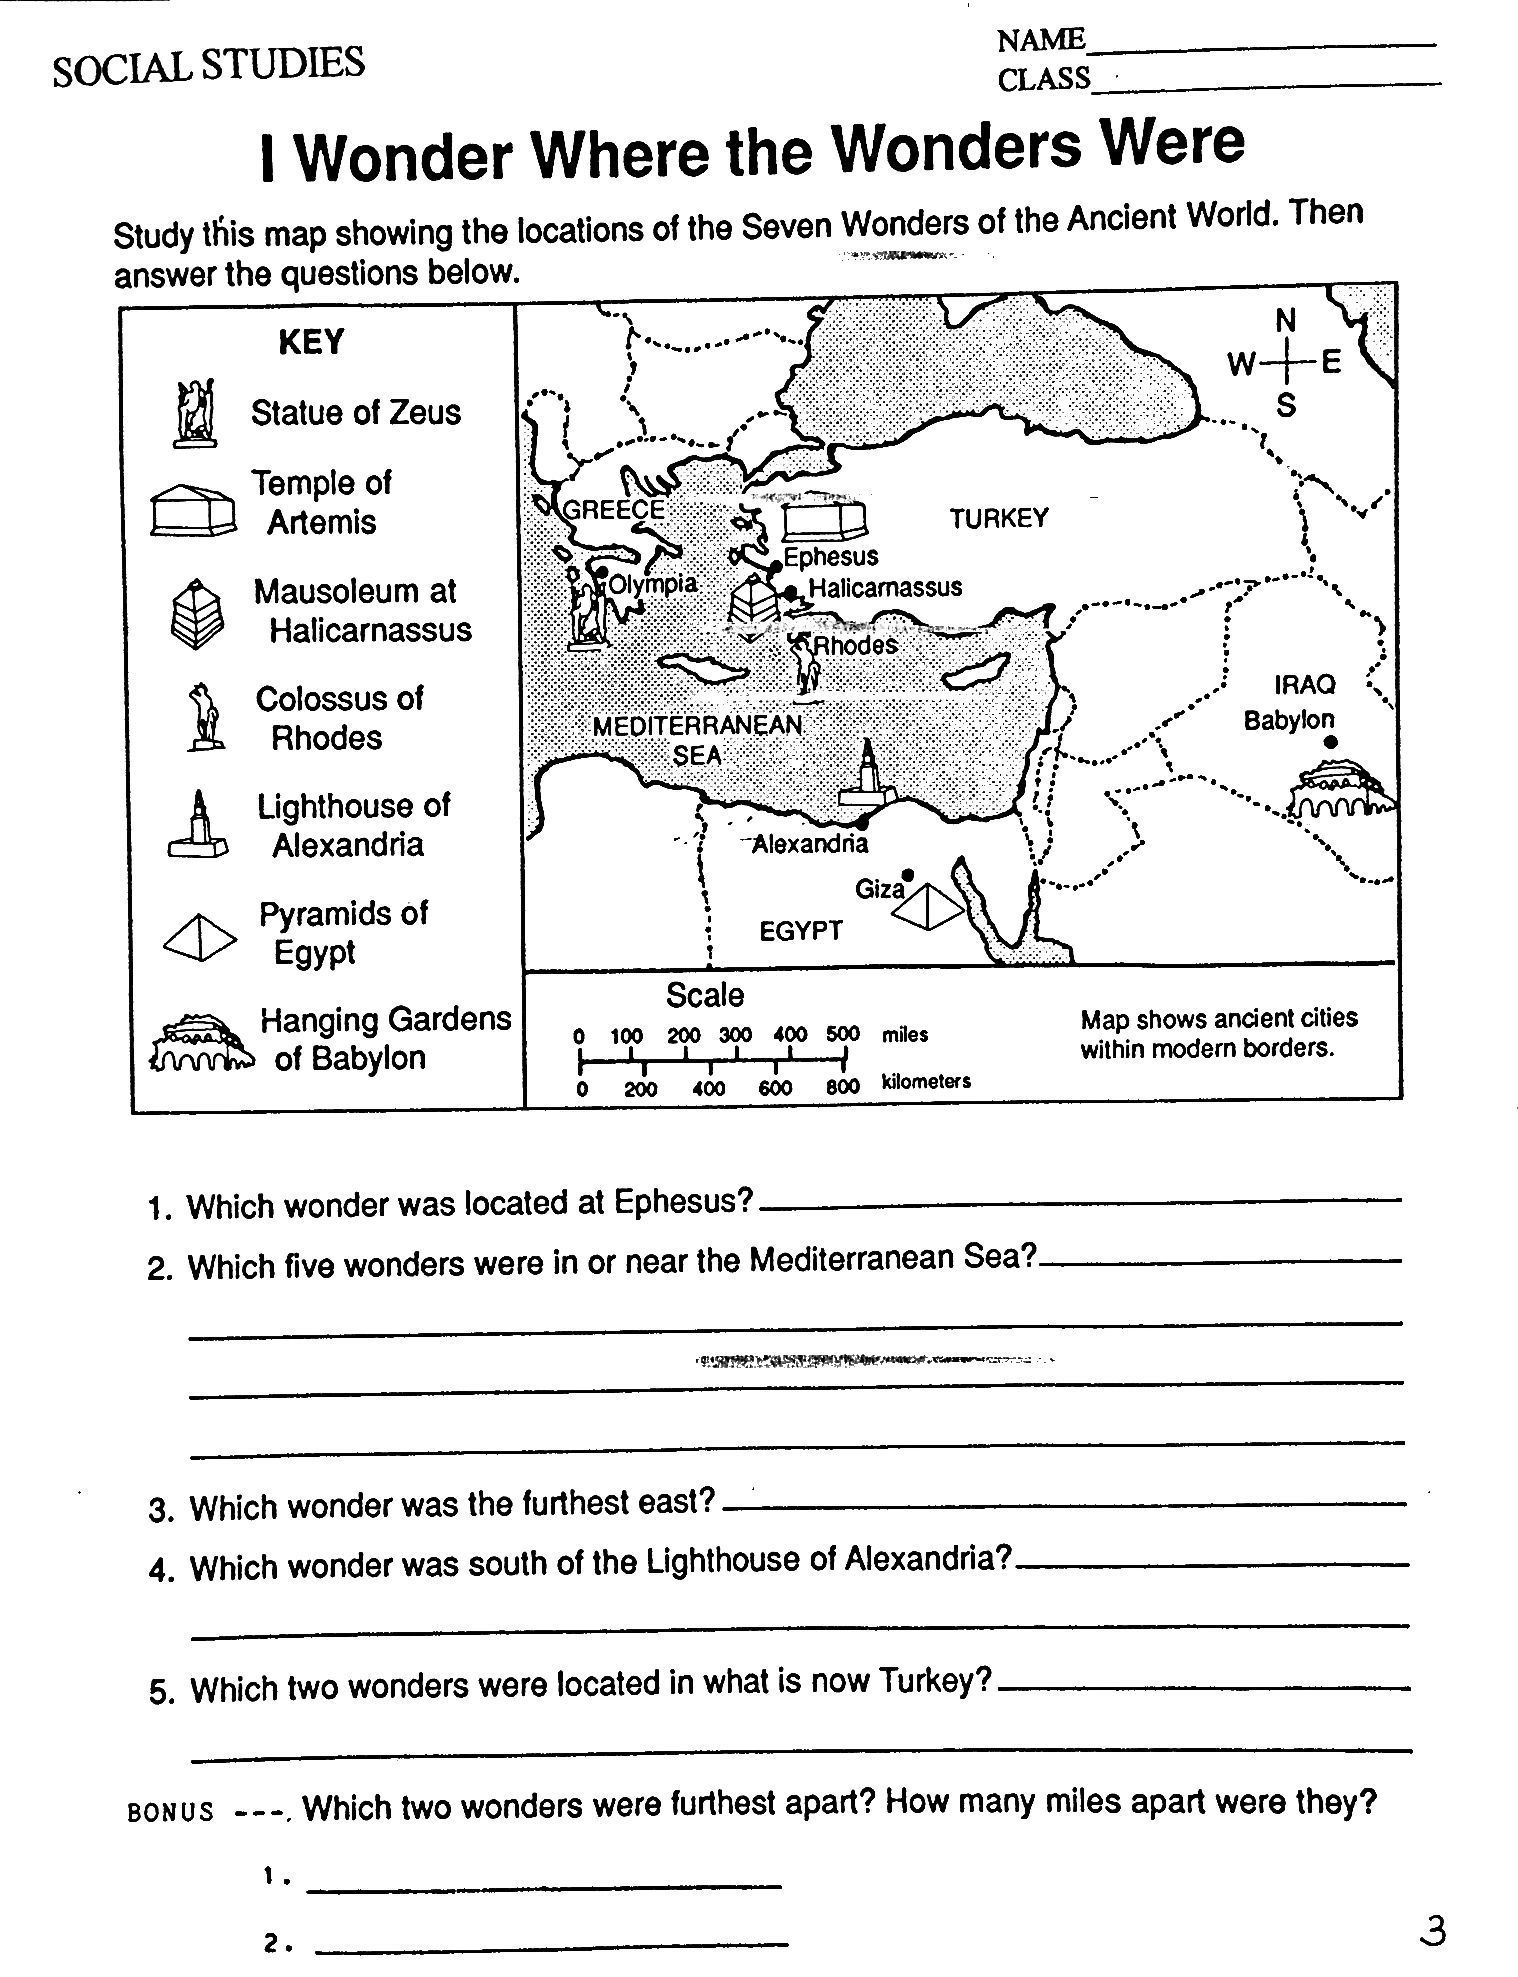 hight resolution of Social studies homework help for 6th graders! Social studies homework help  for 6th graders for creative